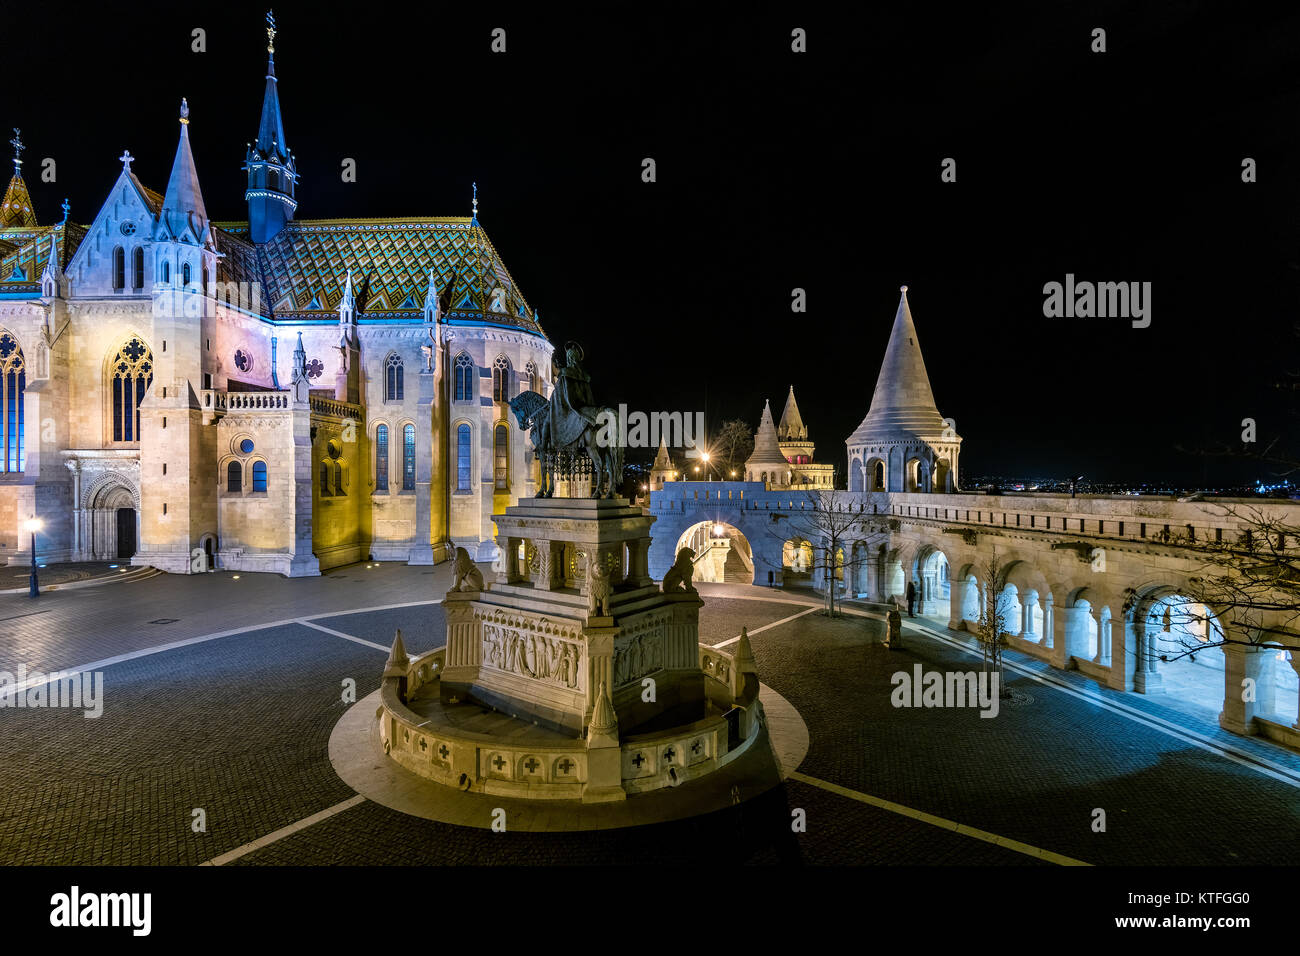 Fishermans bastion at night in Budapest - Stock Image